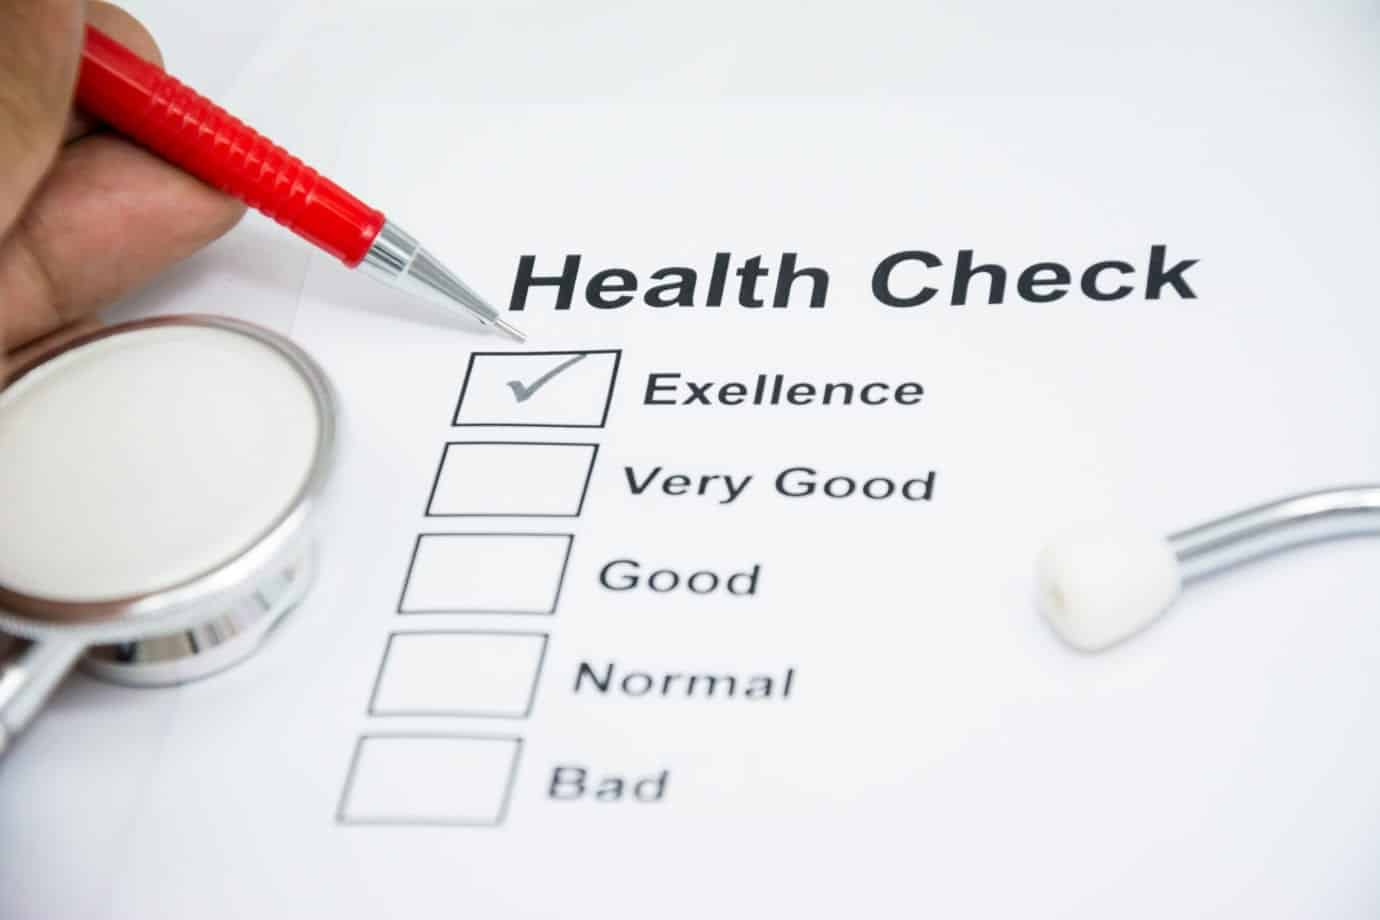 Health Check-up